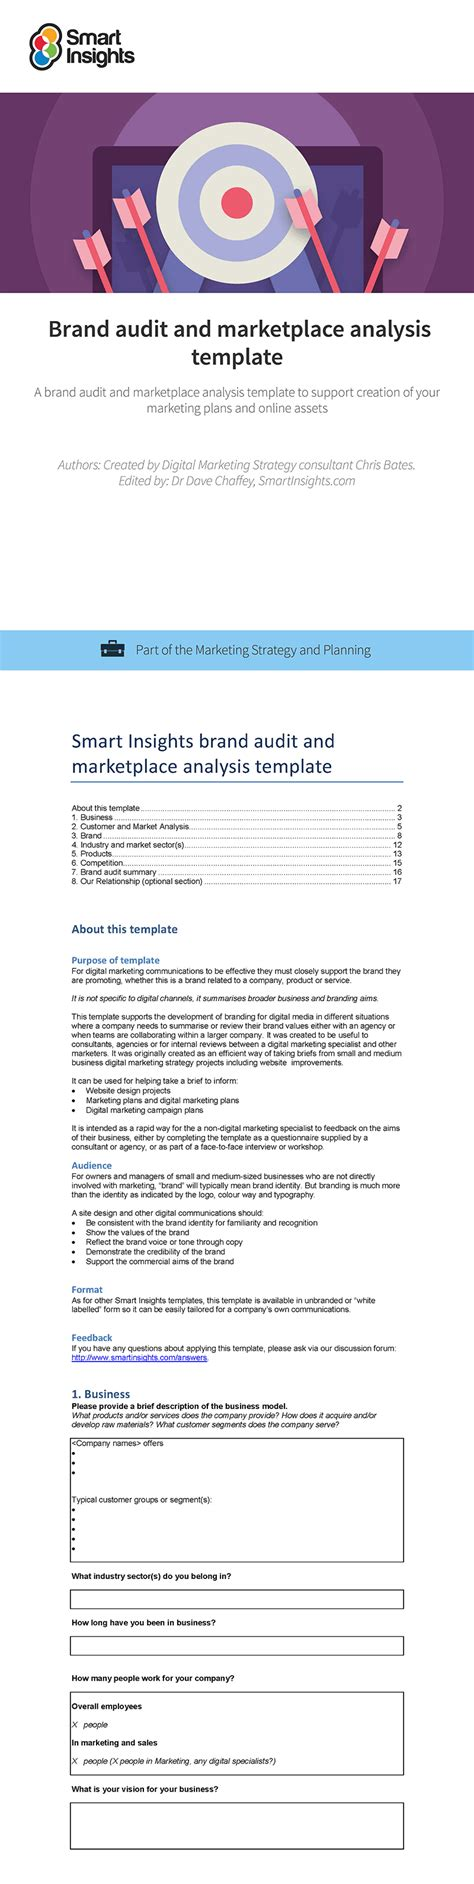 Brand Audit And Marketplace Analysis Template Smart Insights Brand Audit Template